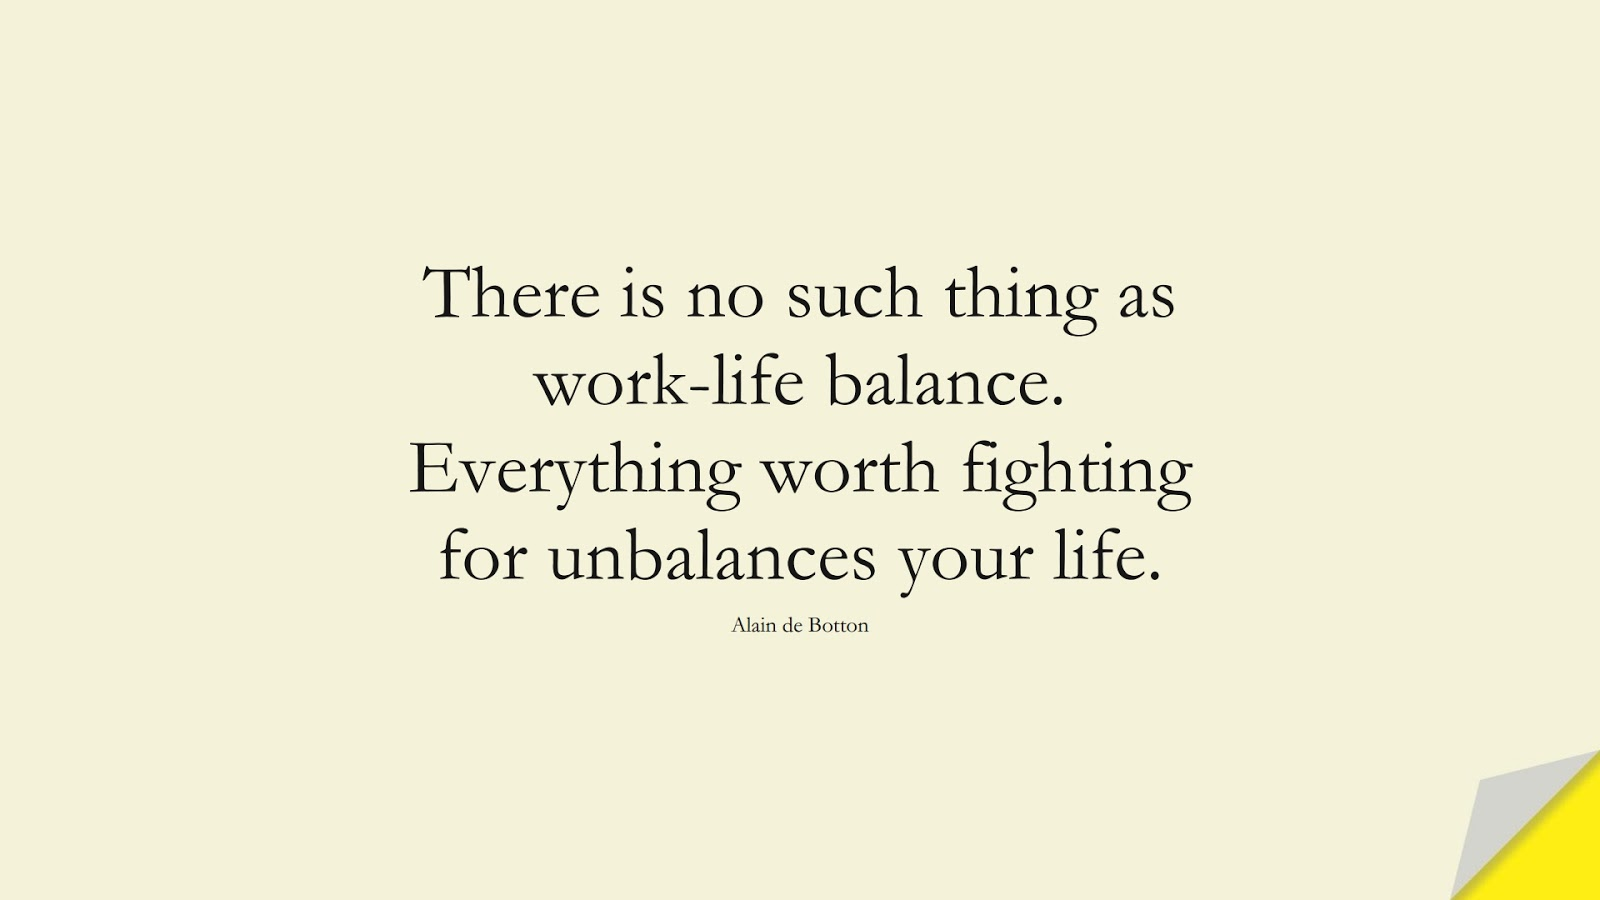 There is no such thing as work-life balance. Everything worth fighting for unbalances your life. (Alain de Botton);  #HardWorkQuotes